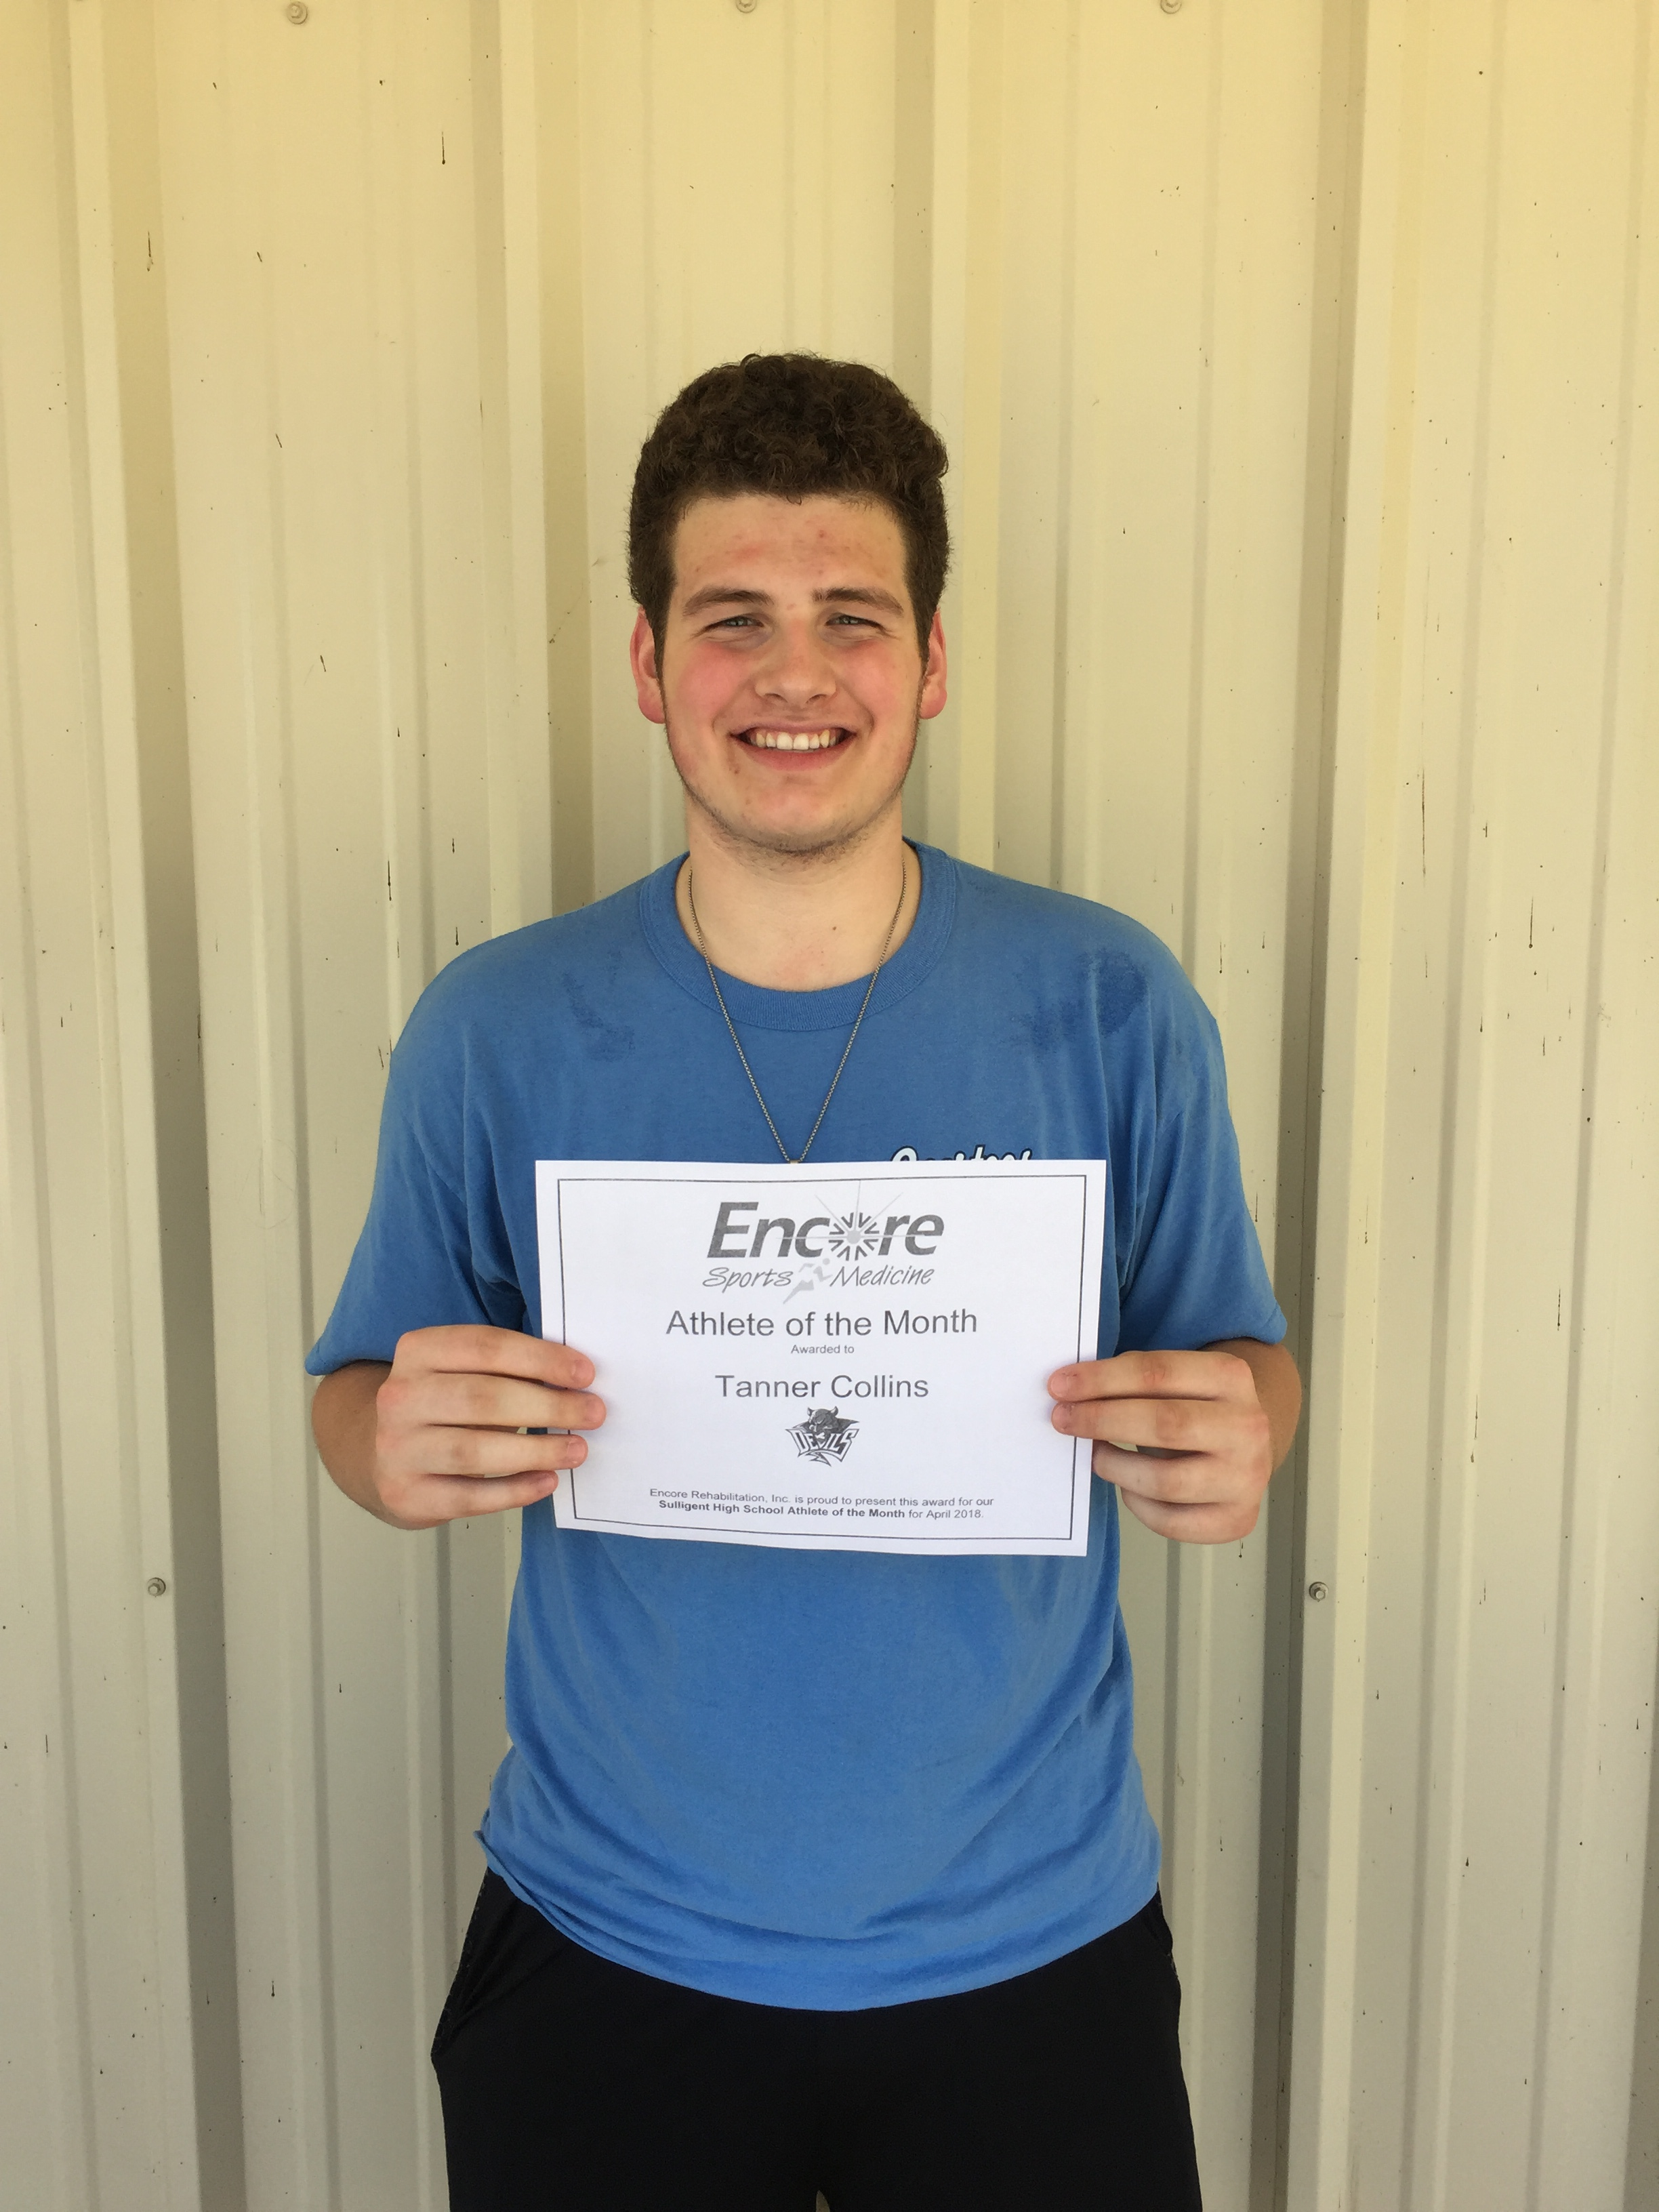 Young man posing for photo with Encore Sports Medicine Athlete of the Month certificate